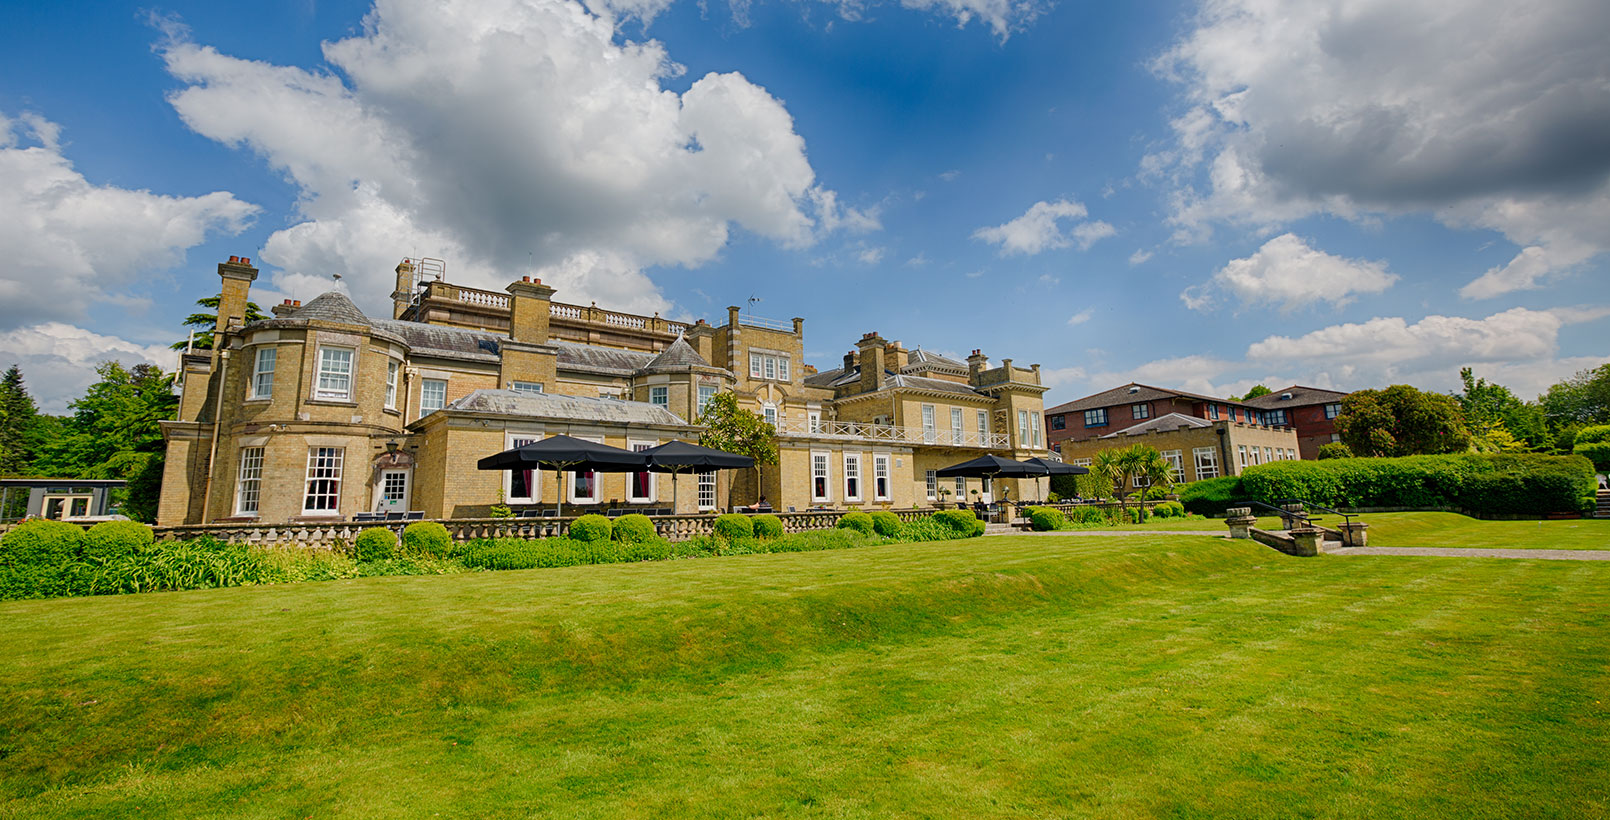 chilworth-manor-grounds-and-hotel-60-83920